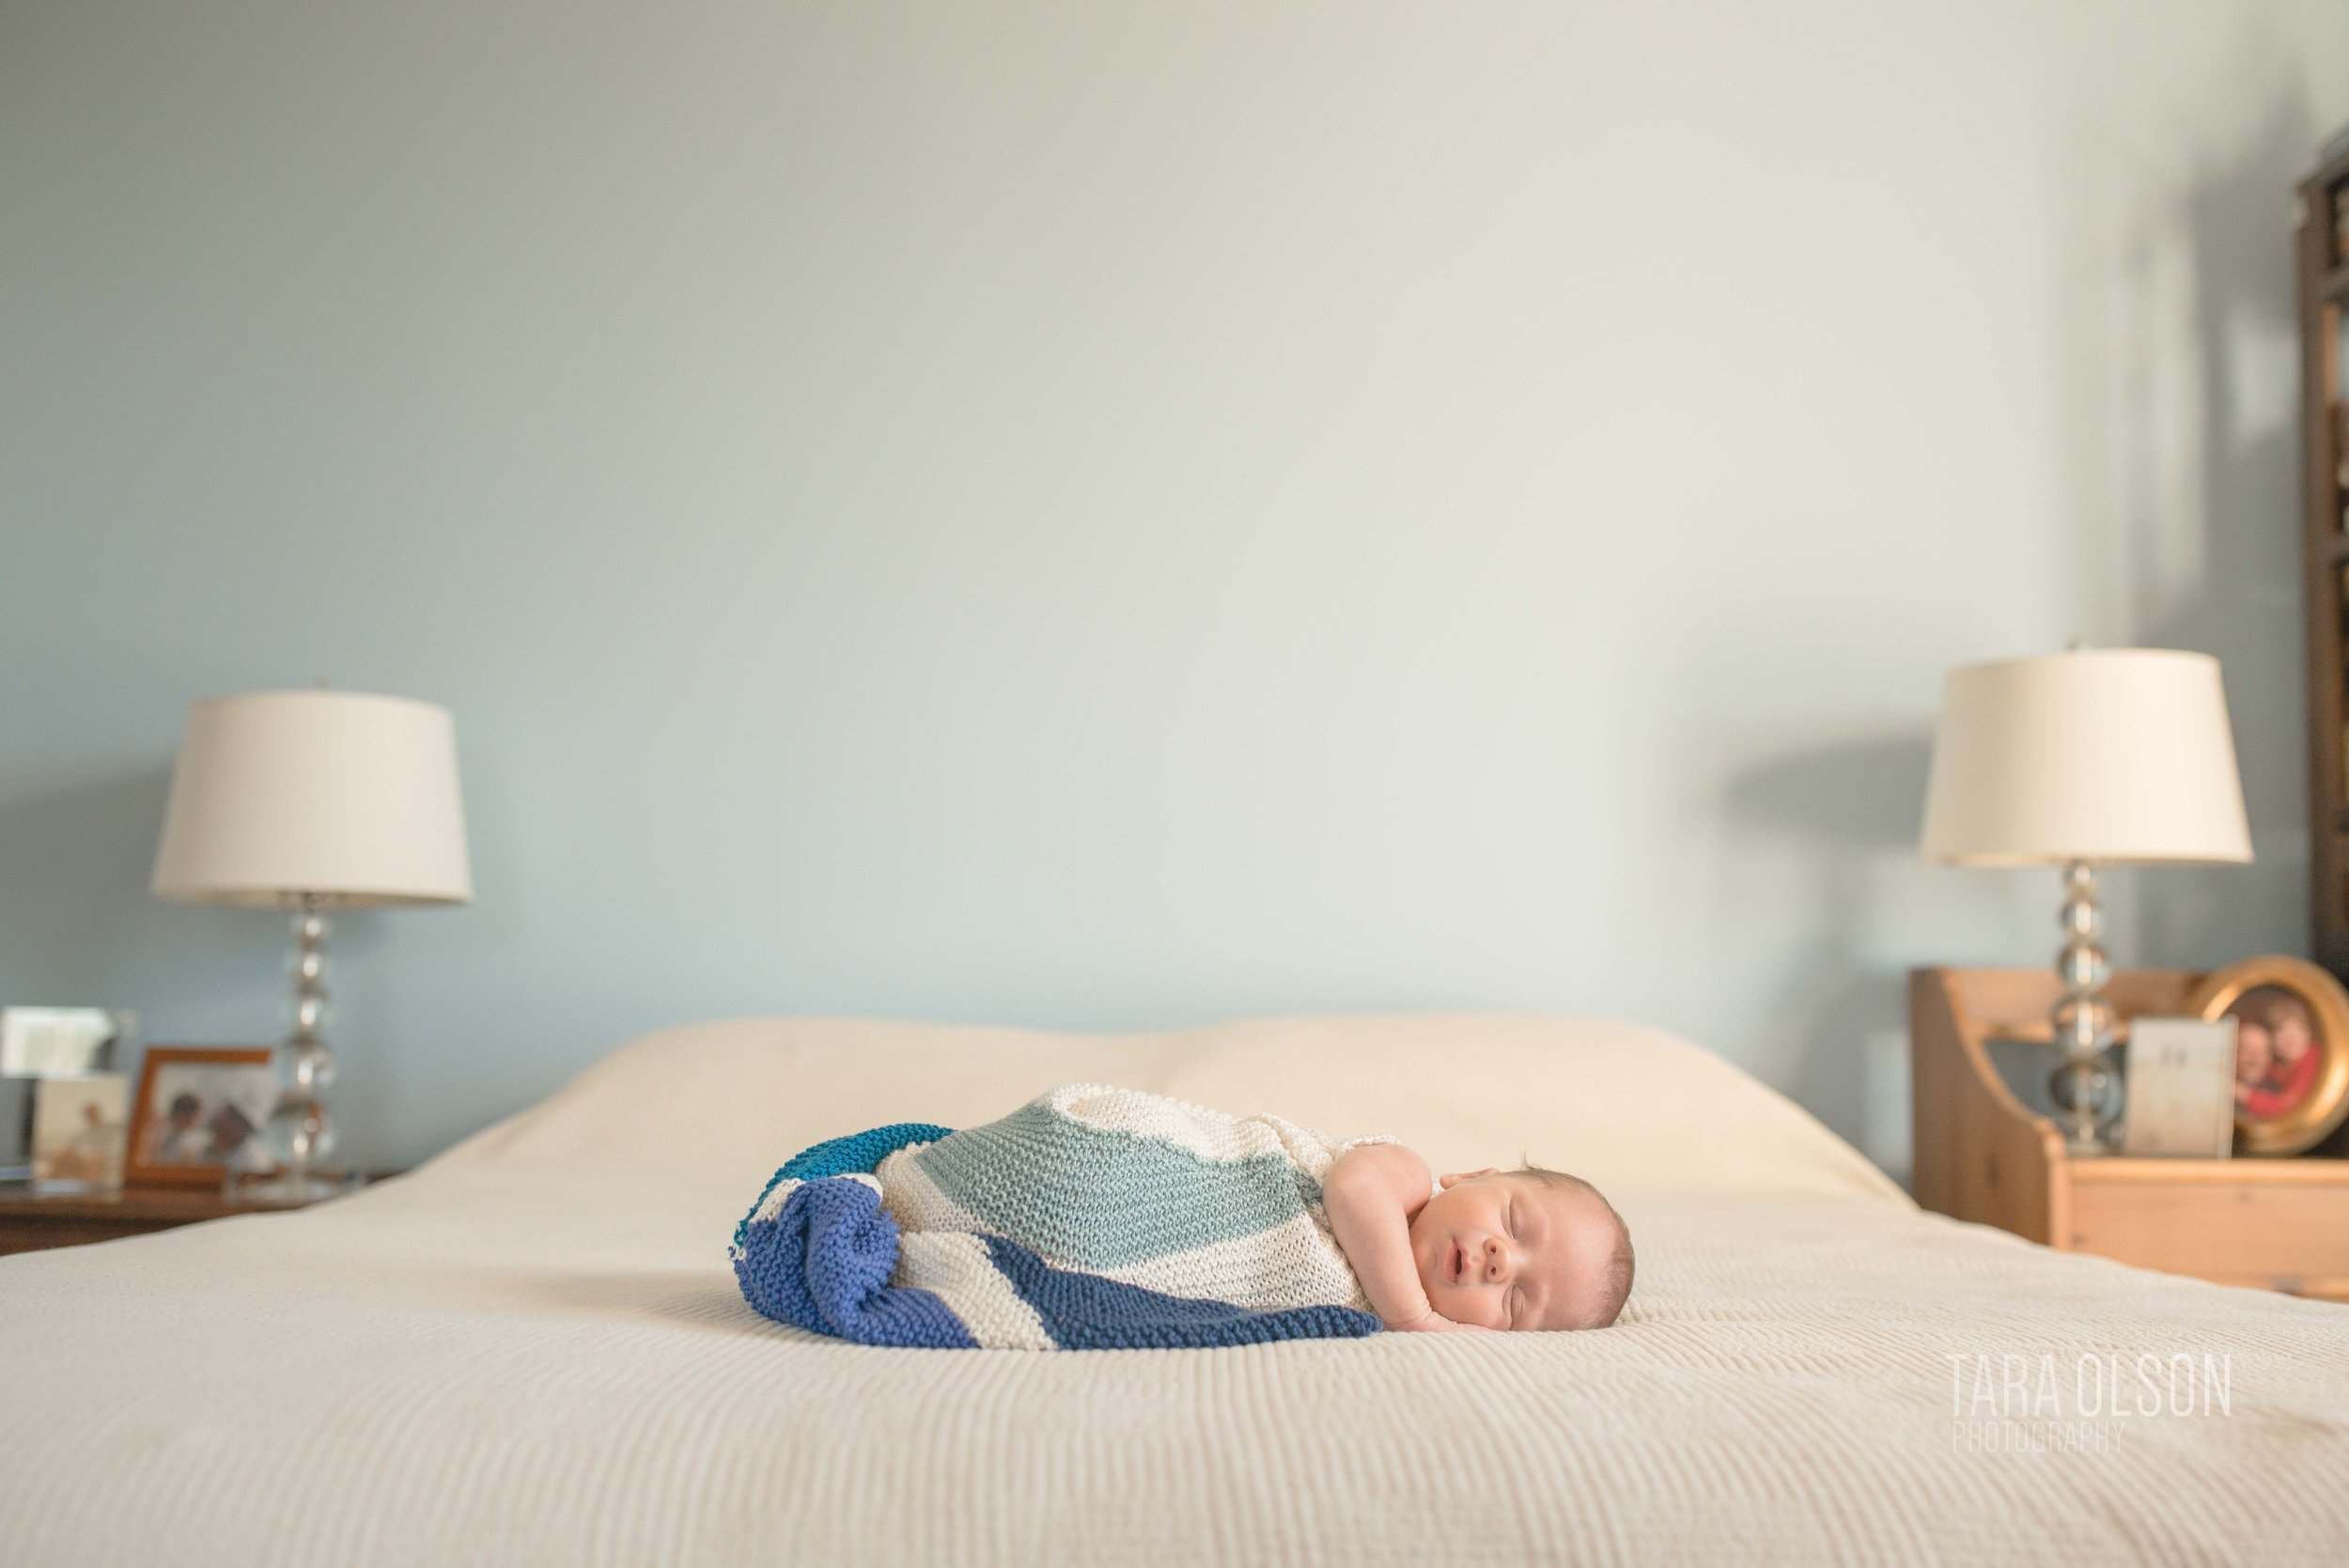 Arlington Lifestyle Newborn Photographer_Tara Olson Photography_4525.jpg